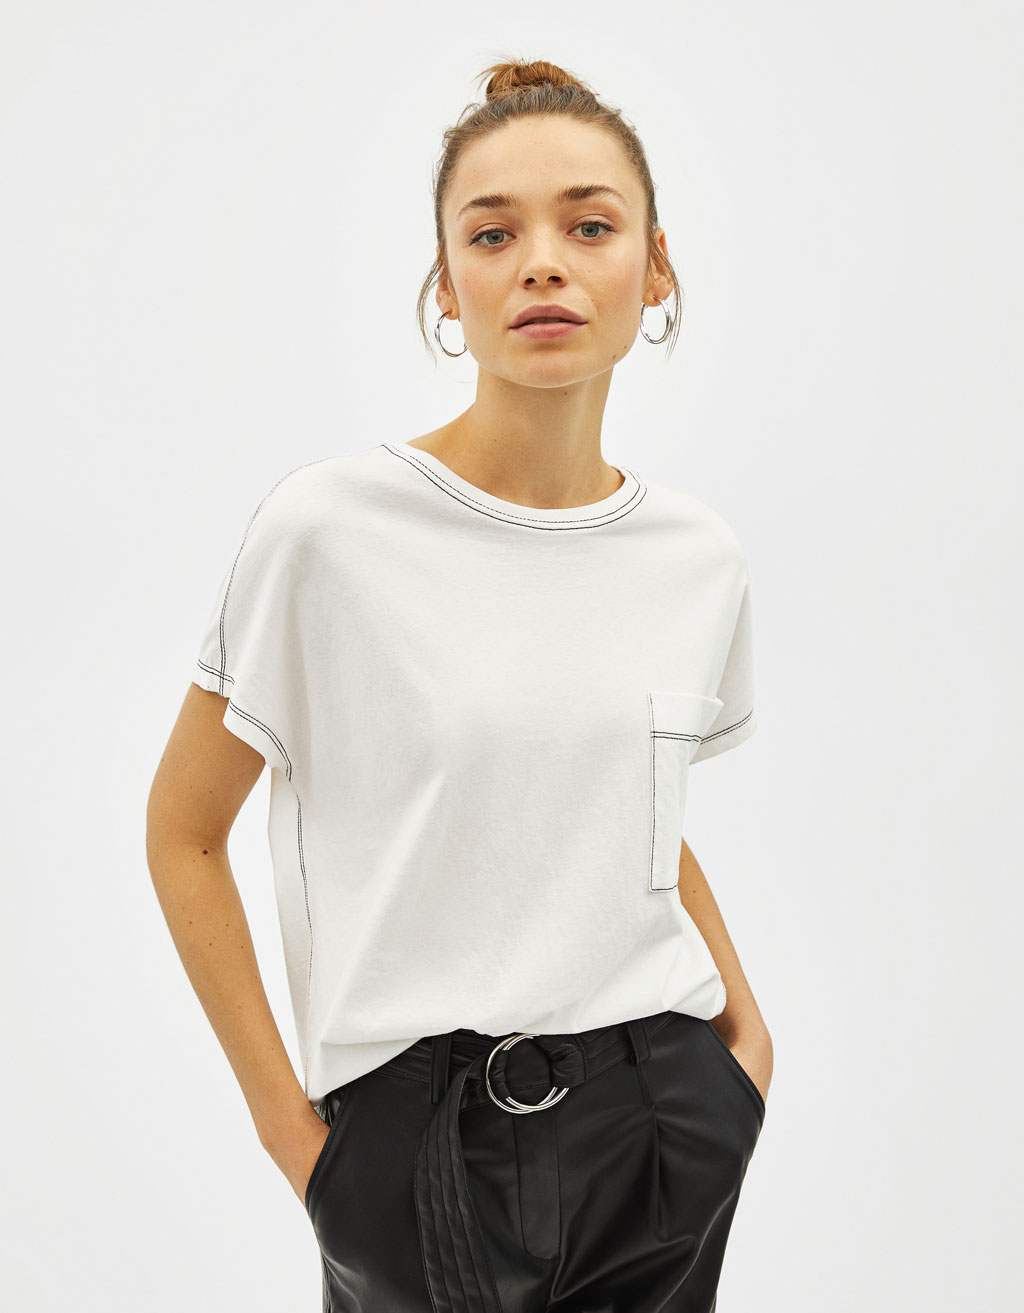 T-shirt with contrasting topstitching and pocket